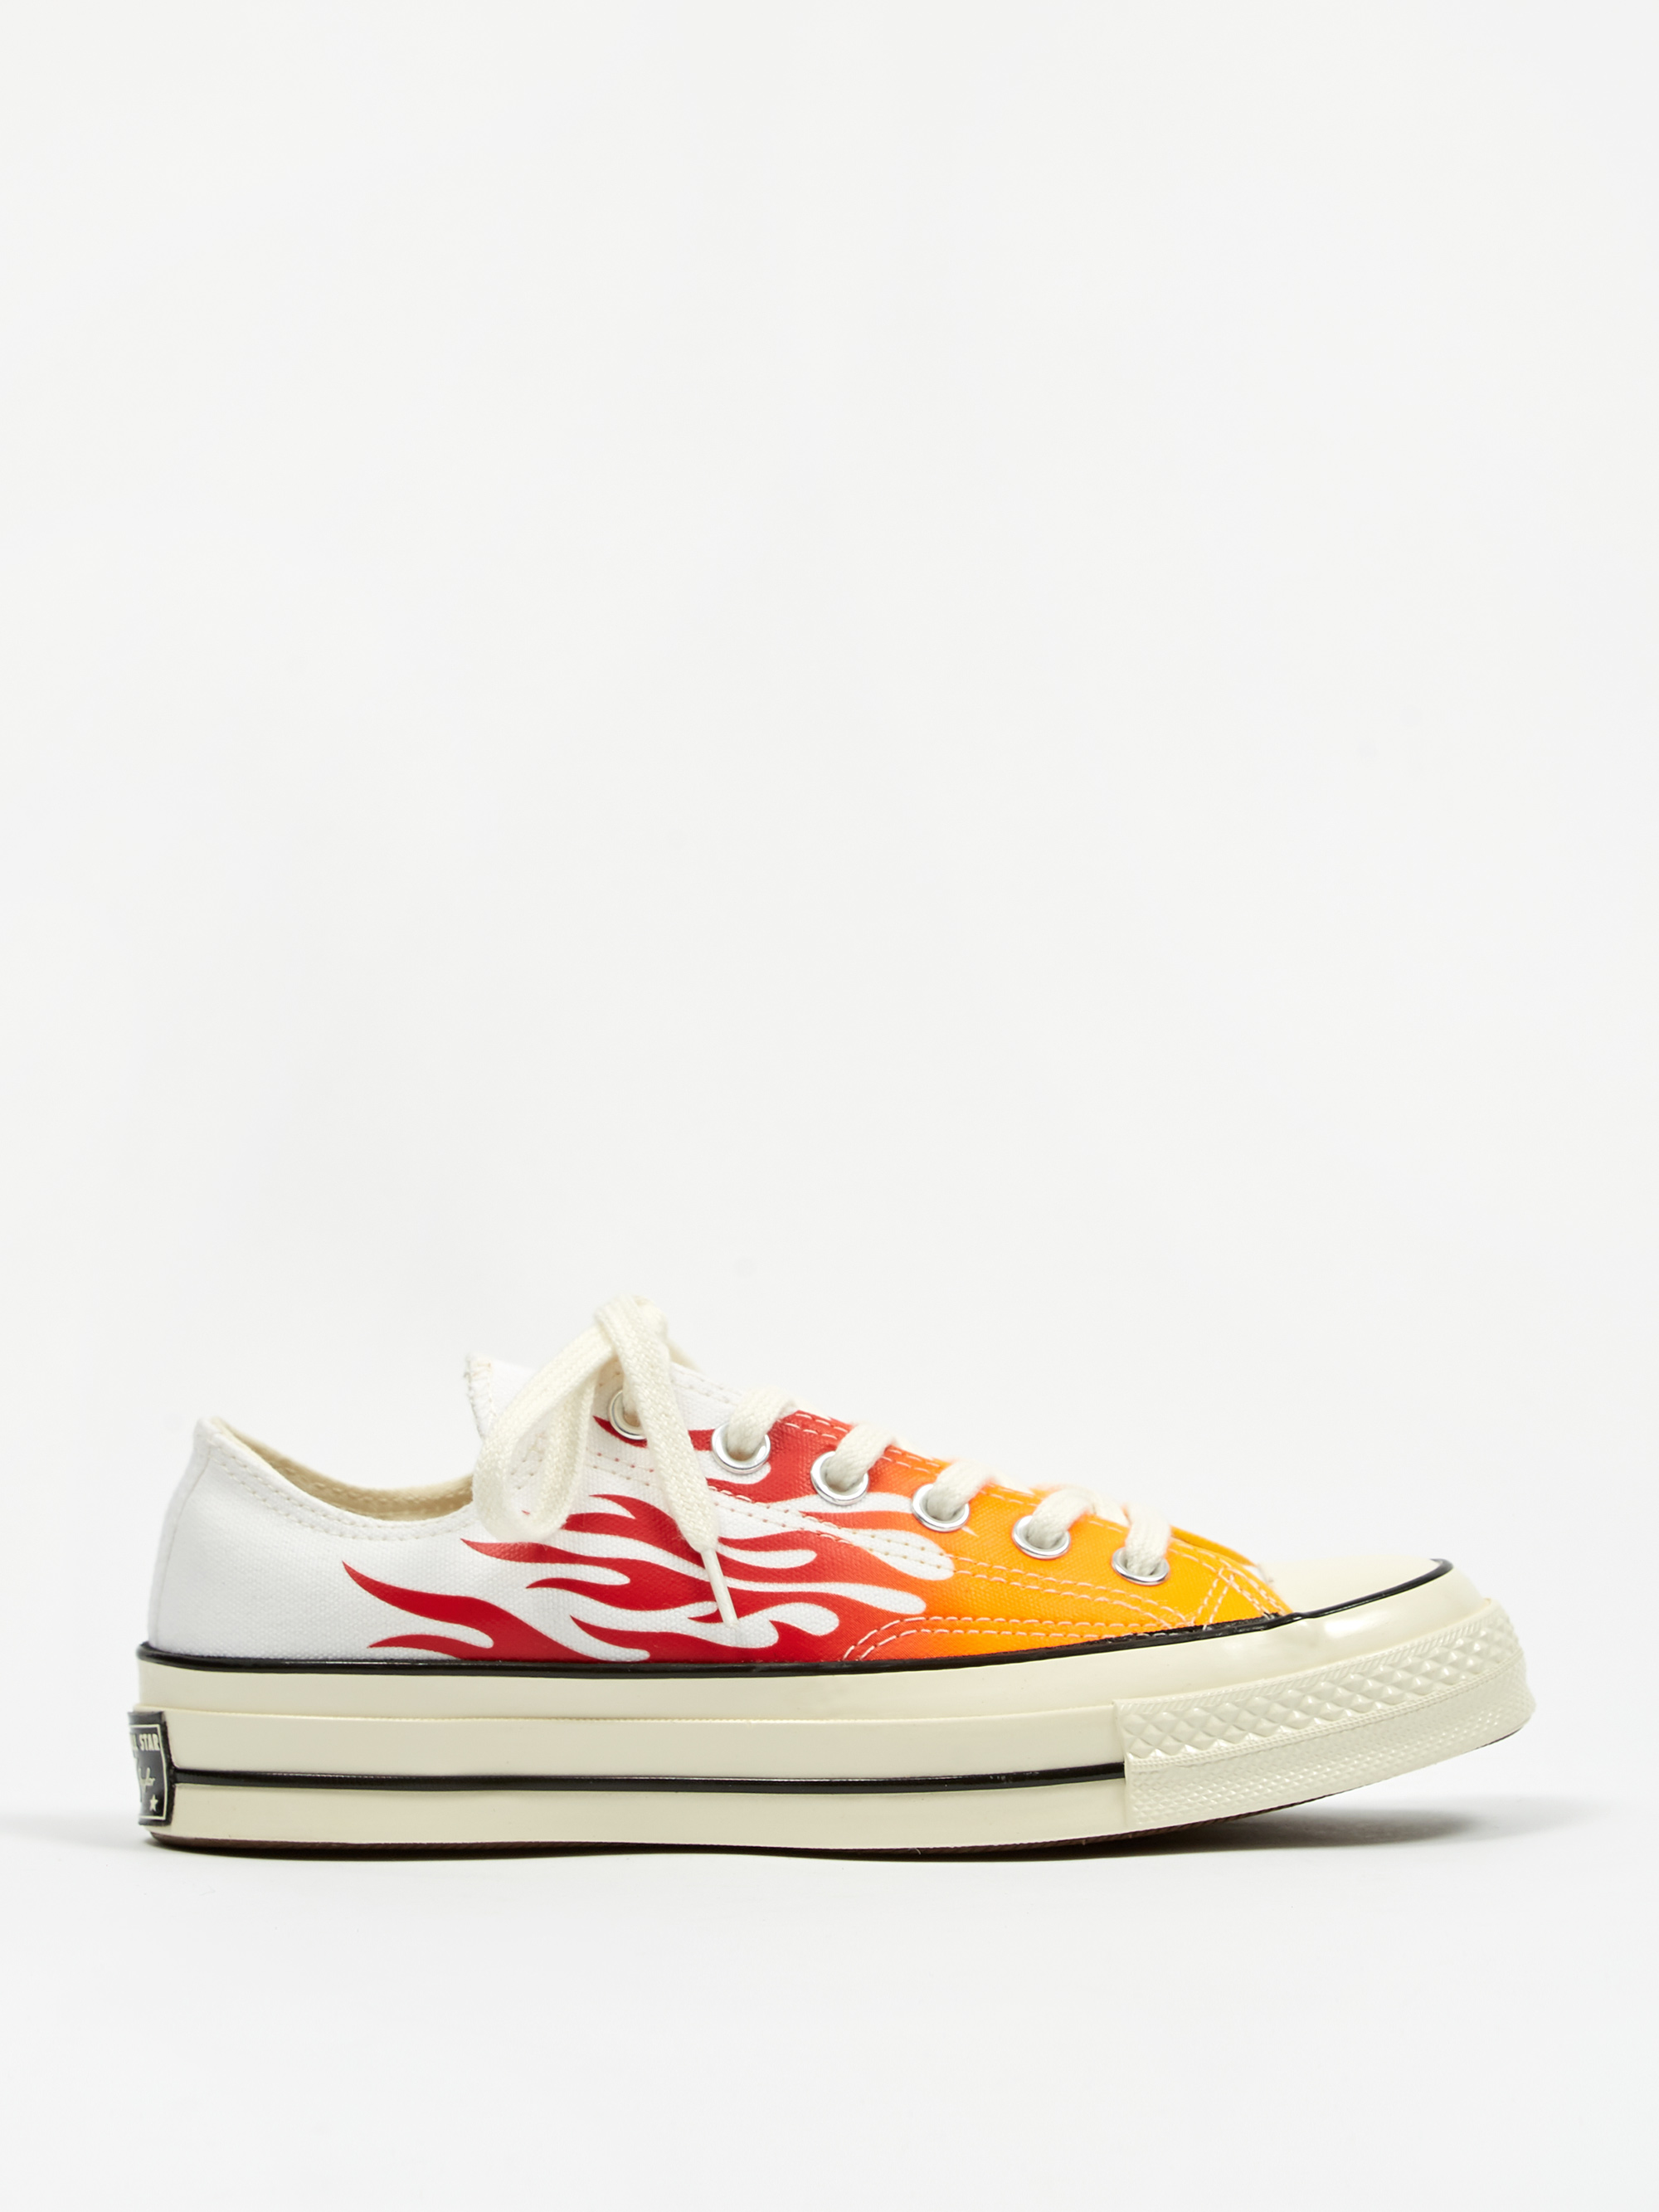 Converse Chuck Taylor All Star 70 Archive Prints Ox WhiteRed